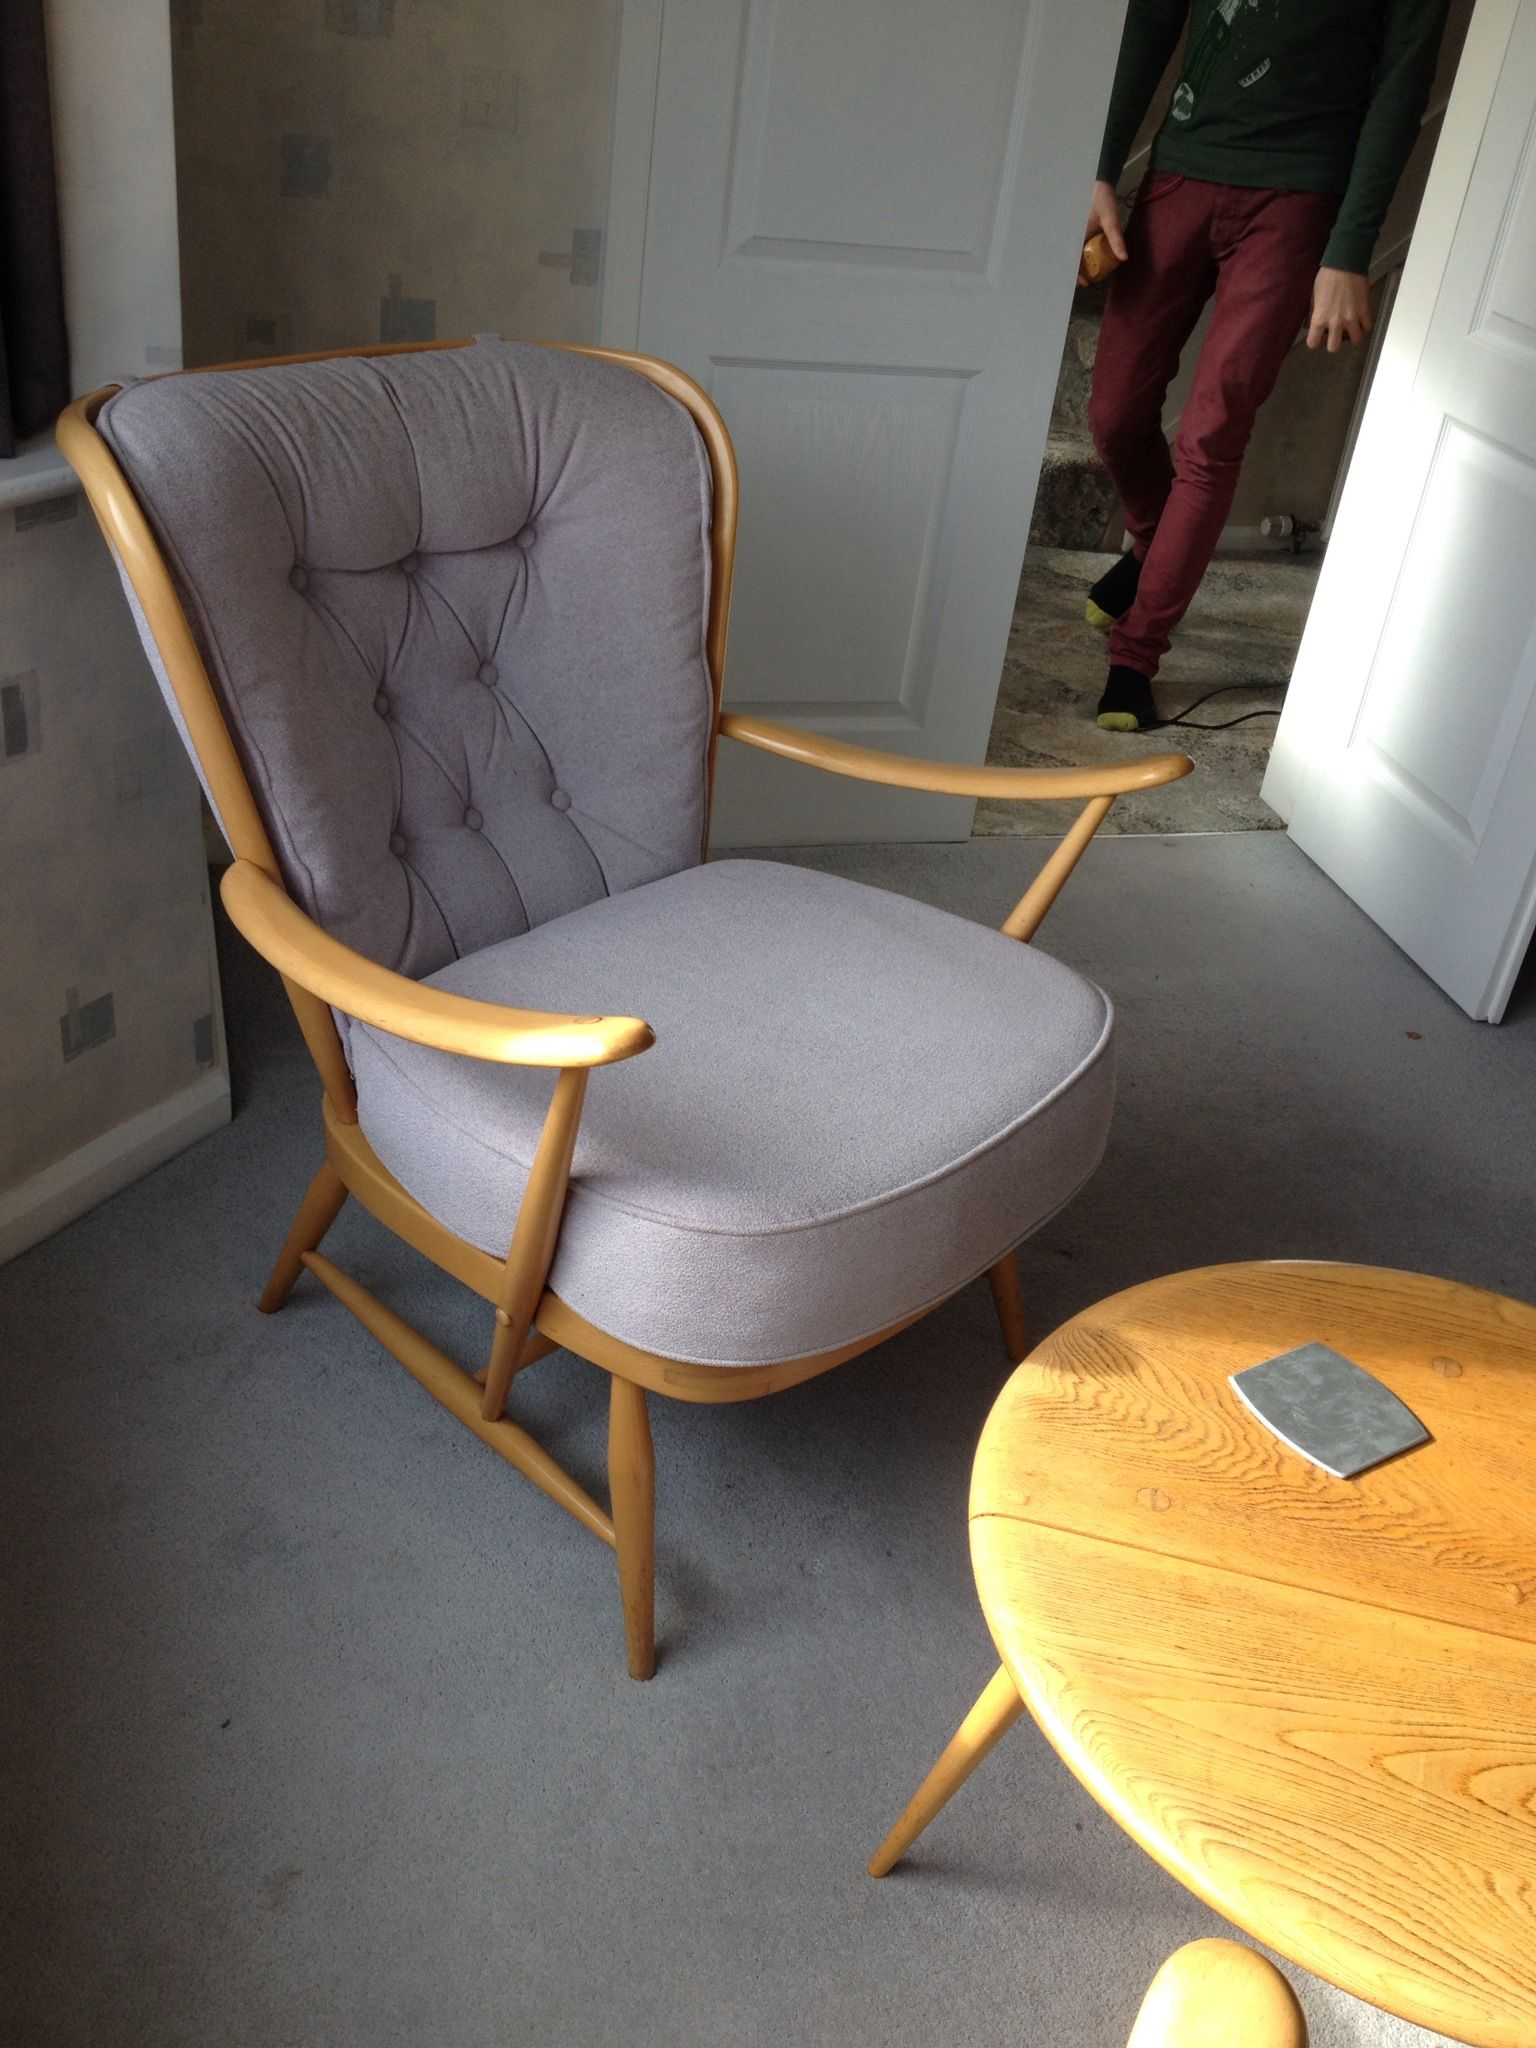 Ercol chairs and coffee table for sale. 4 chairs like this